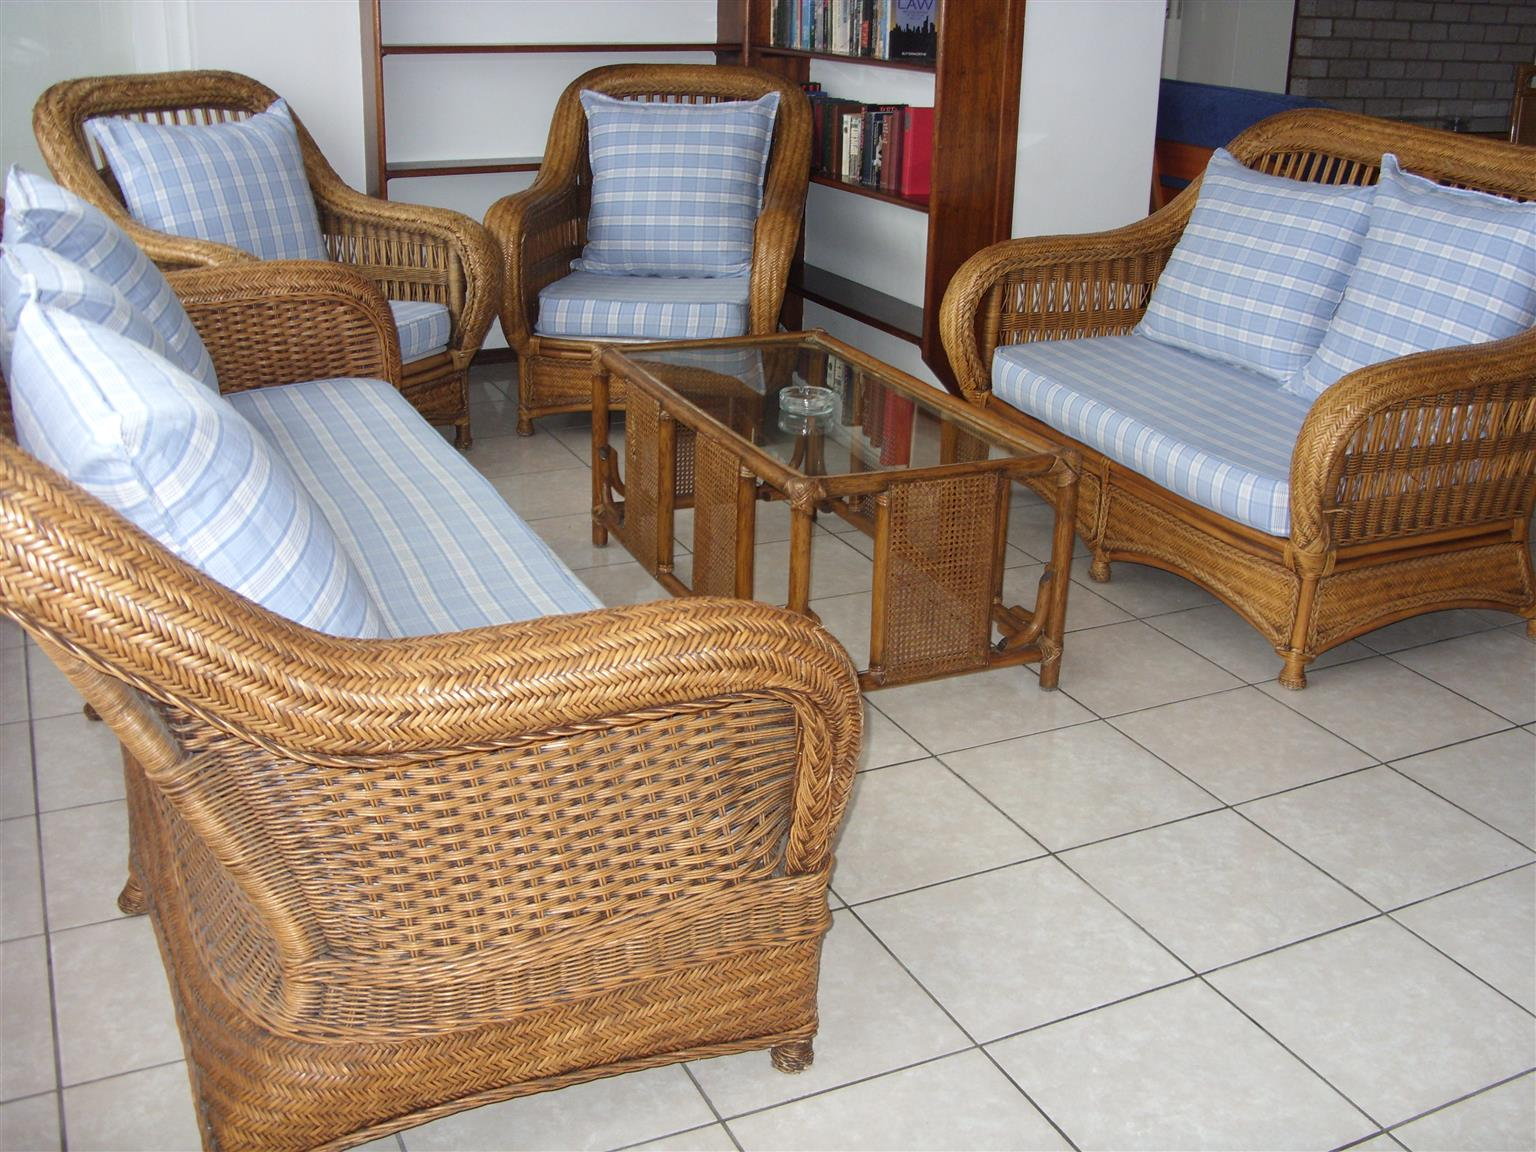 3 Bedroom 2 Bathroom Furnished Flat R6500 pm St Michaels-on-Sea Shelly Beach occupation January